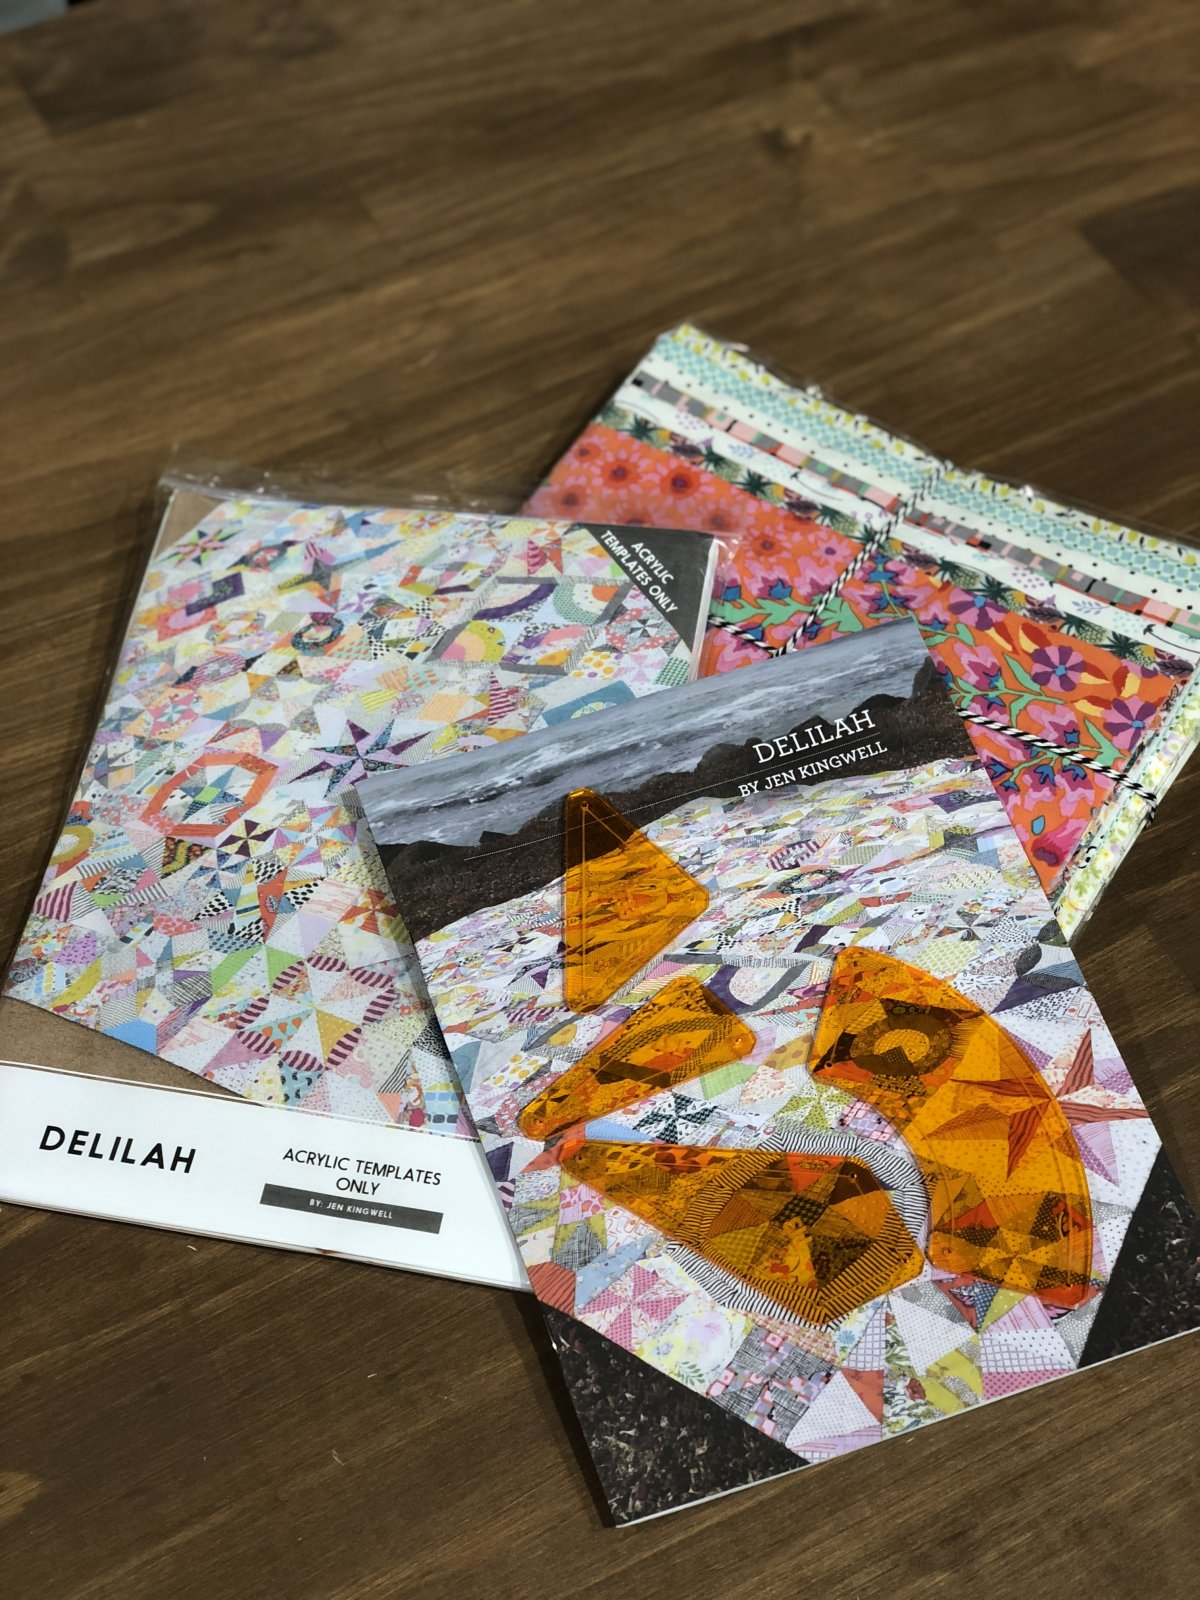 Special Offer - Delilah Acrylic Templates and Fabric Starter Kit